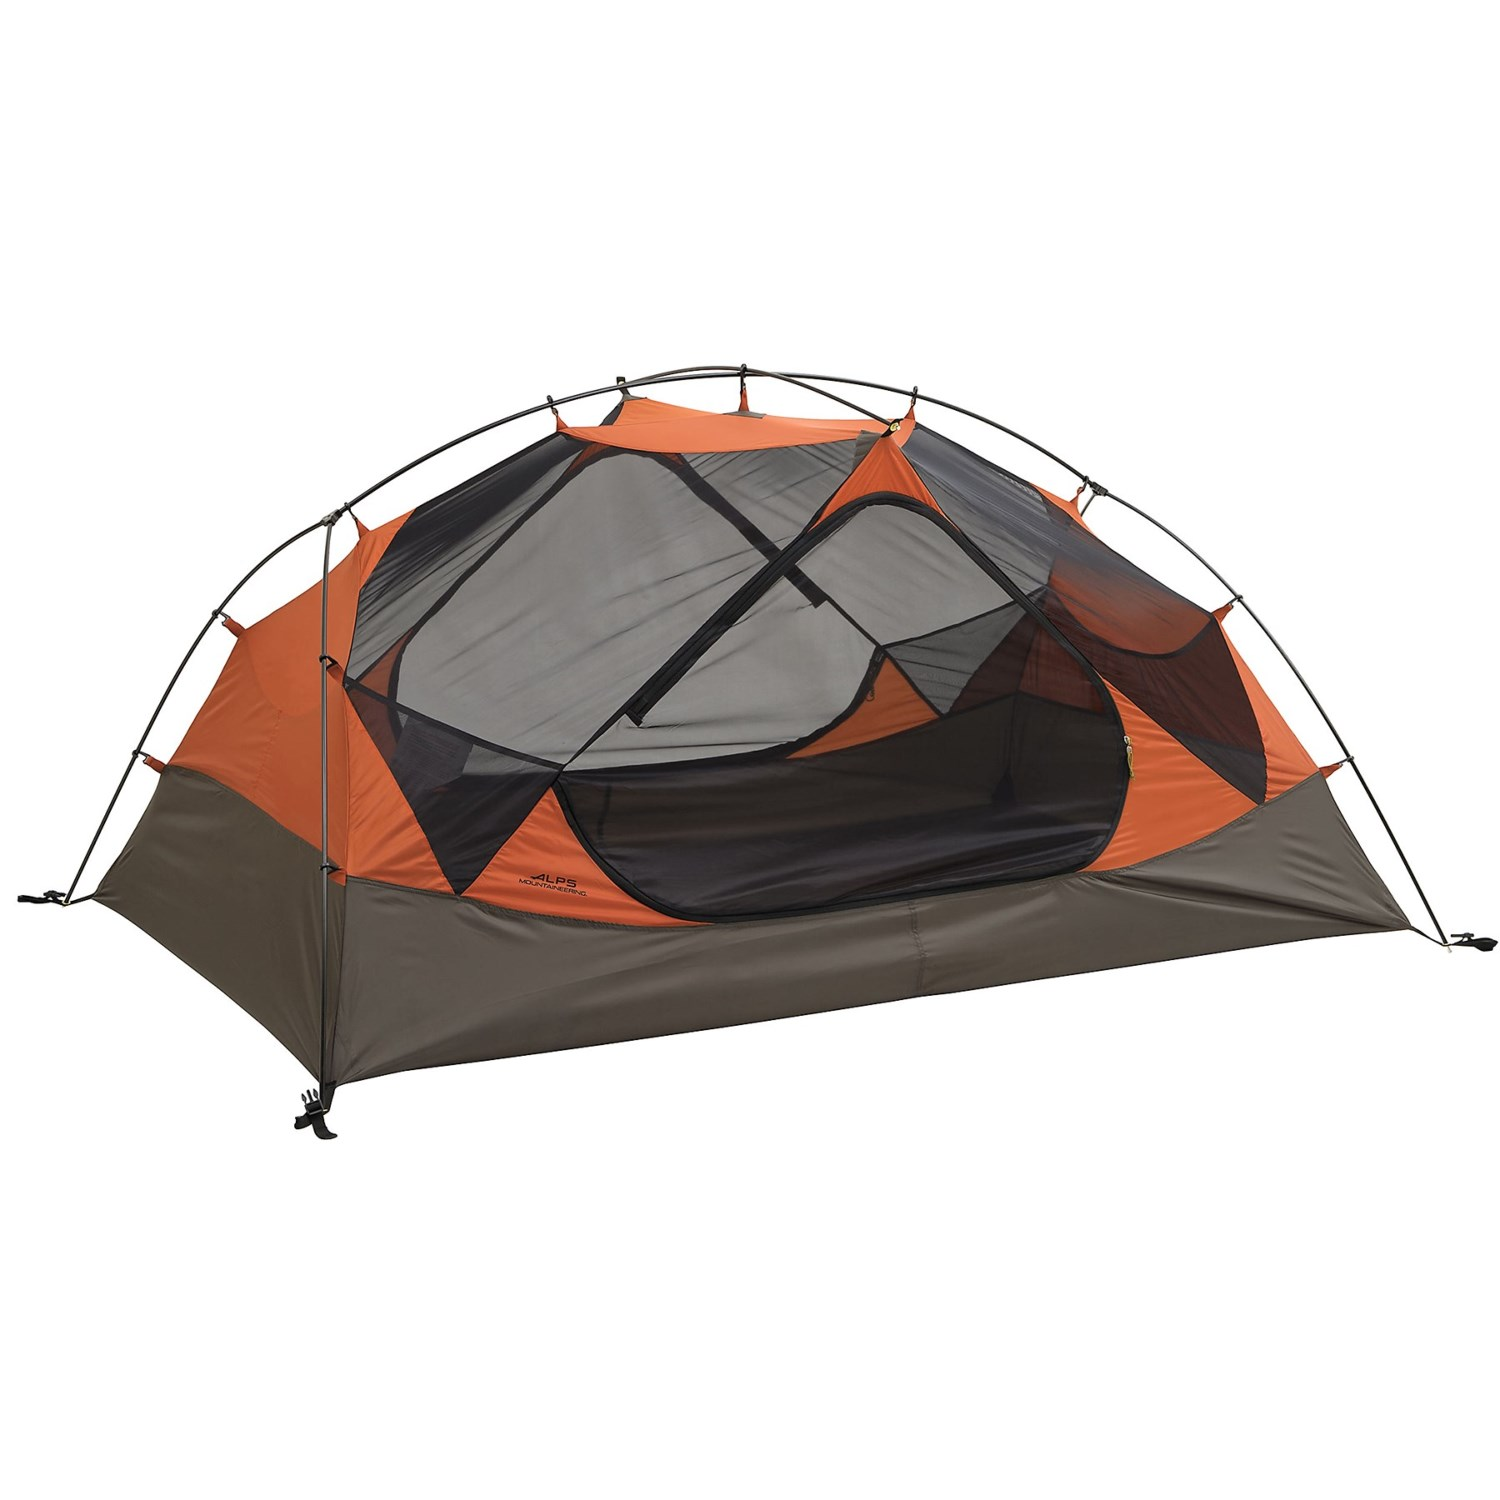 ALPS Mountaineering Chaos 2 Tent - 2-Person 3-Season in Dark Clay ...  sc 1 st  Sierra Trading Post & ALPS Mountaineering Chaos 2 Tent - 2-Person 3-Season - Save 58%